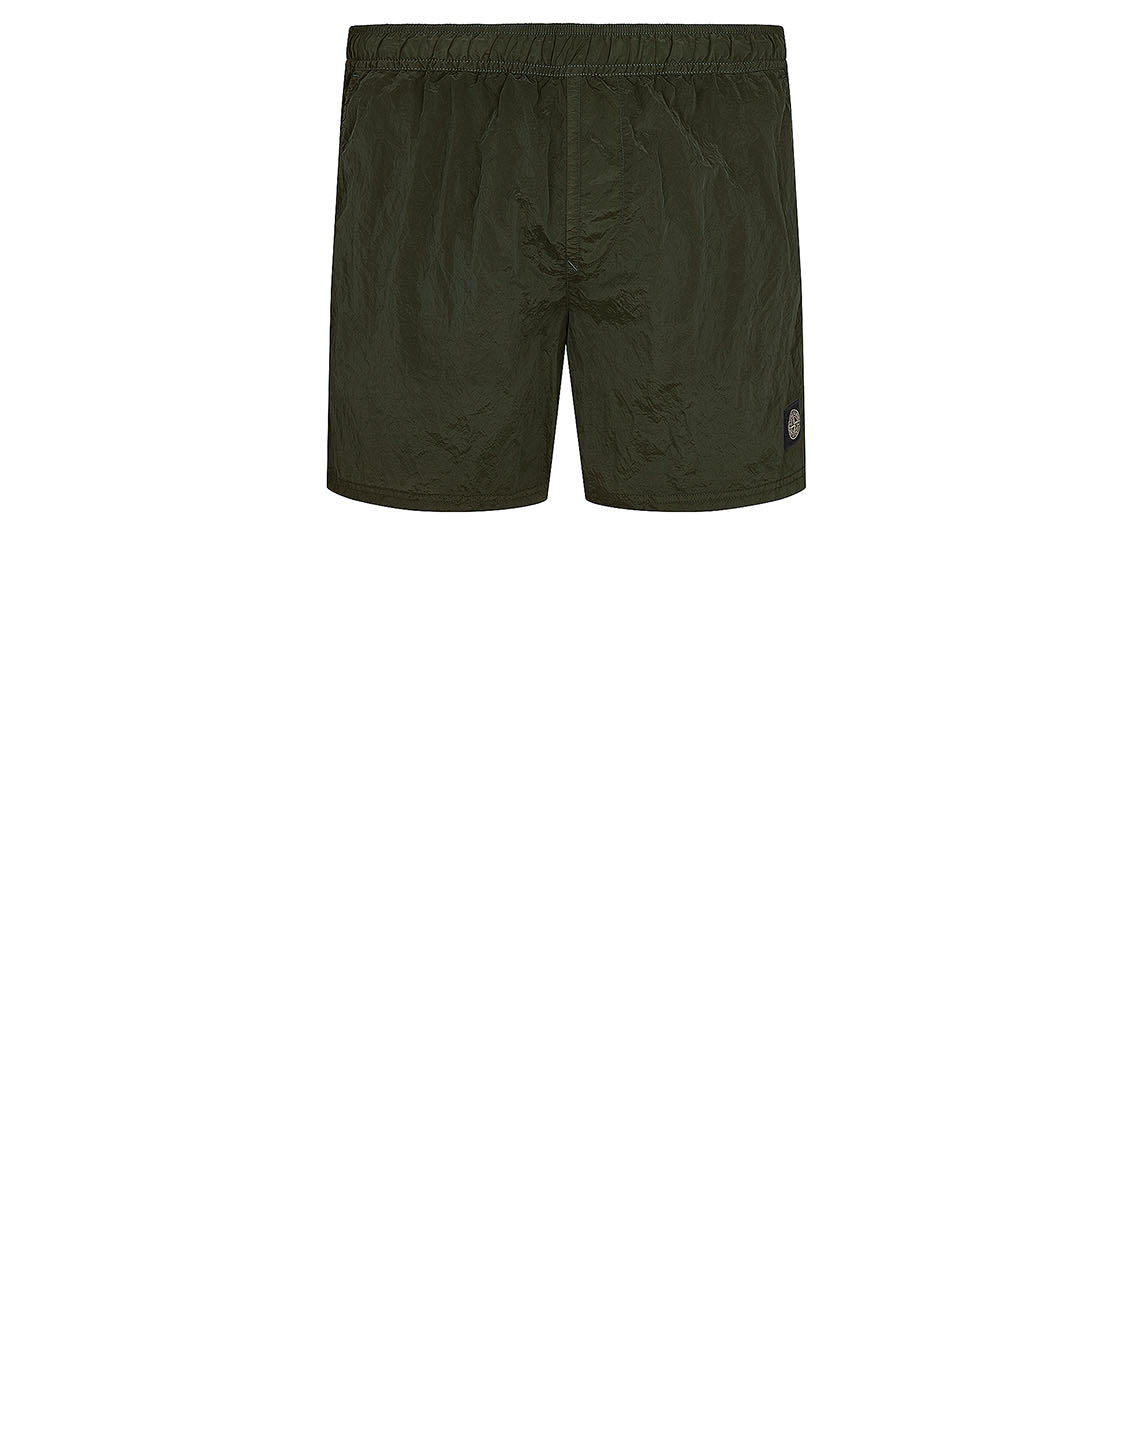 B0943 NYLON METAL Shorts in Olive Green